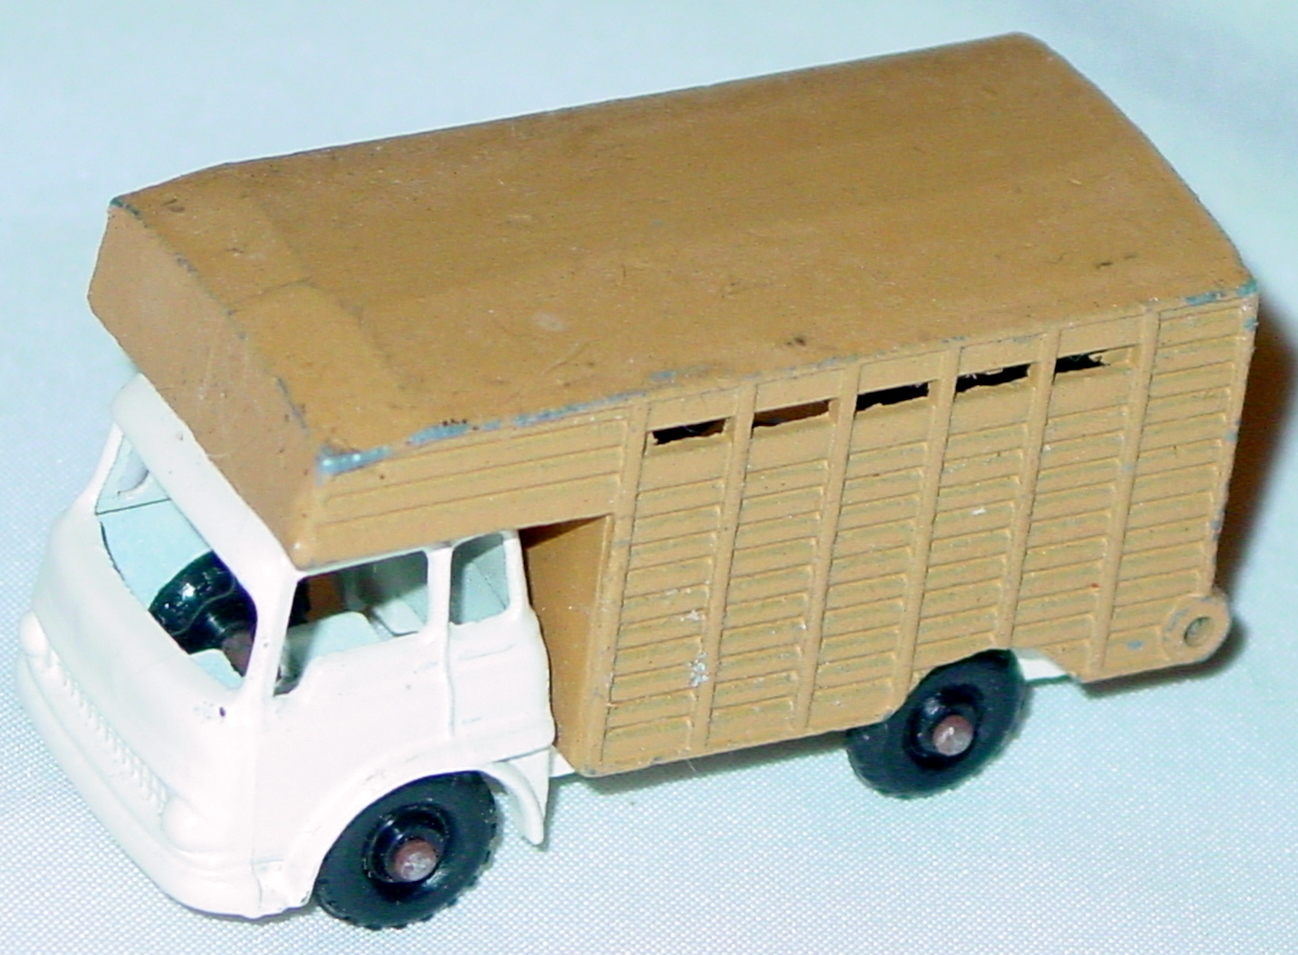 72 - BUDGIE 25 Cattle Truck White and Tan